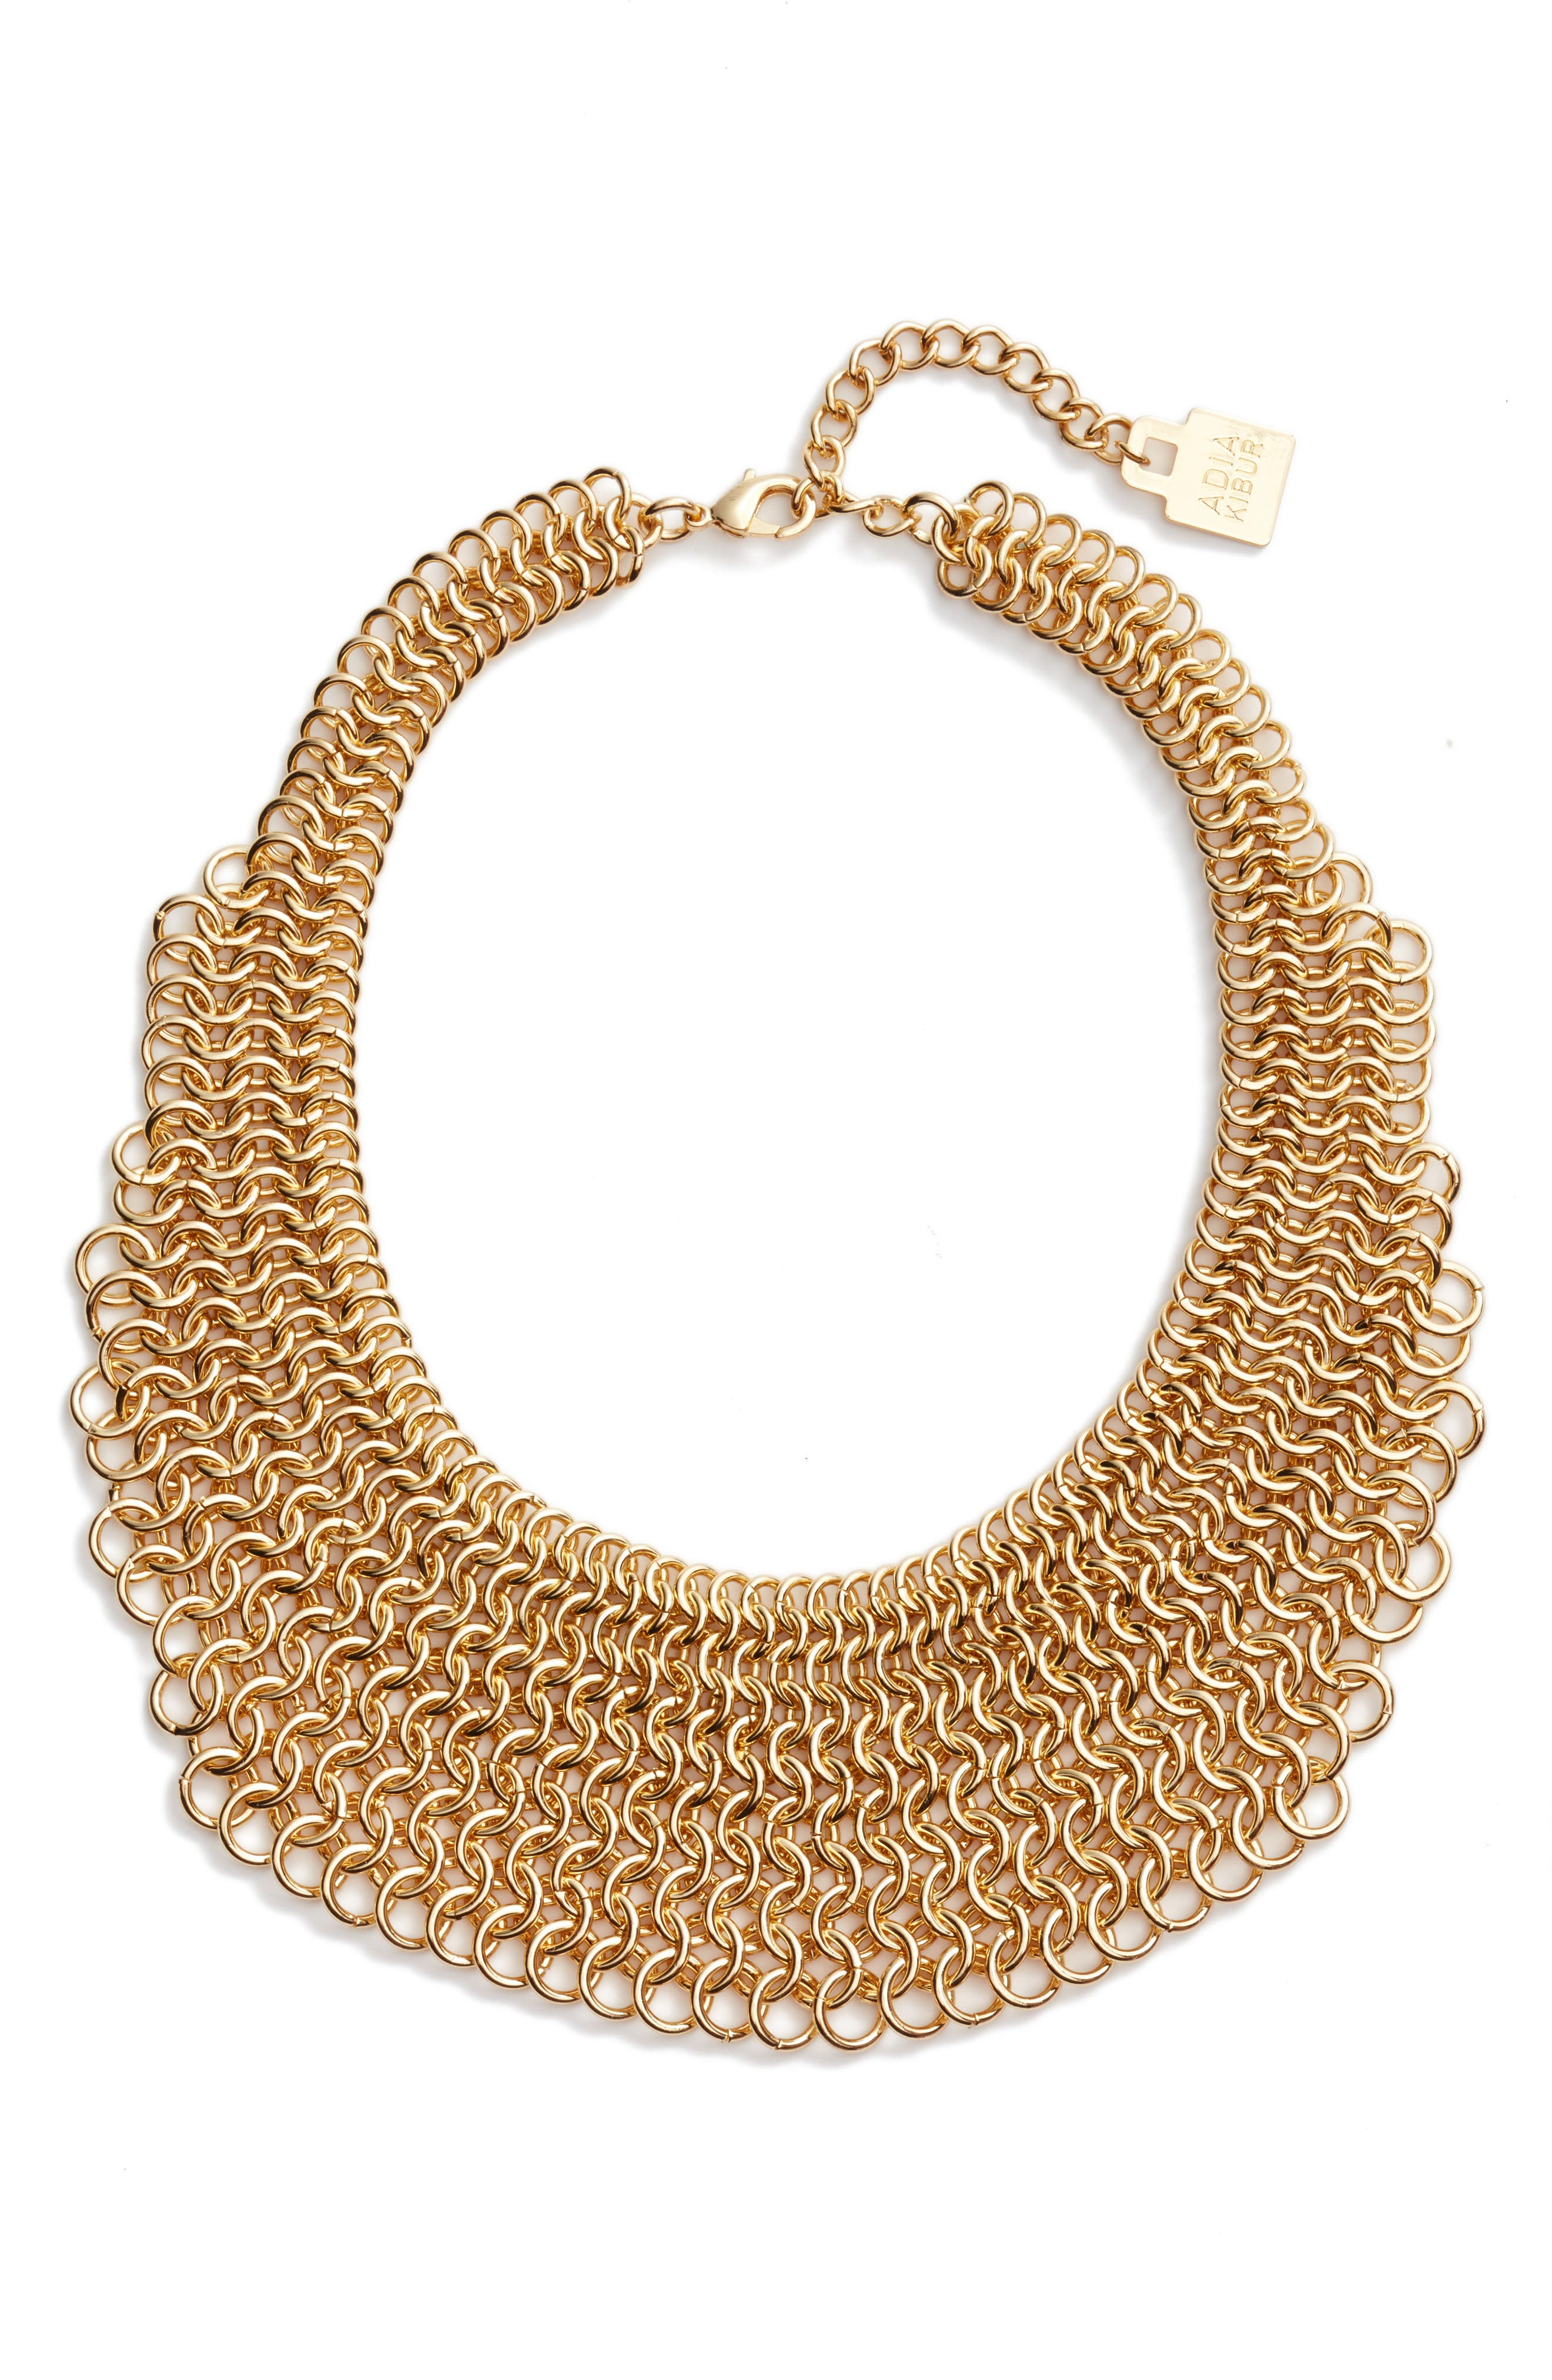 Linked Circle Statement Bib Necklace,                             Main thumbnail 1, color,                             710